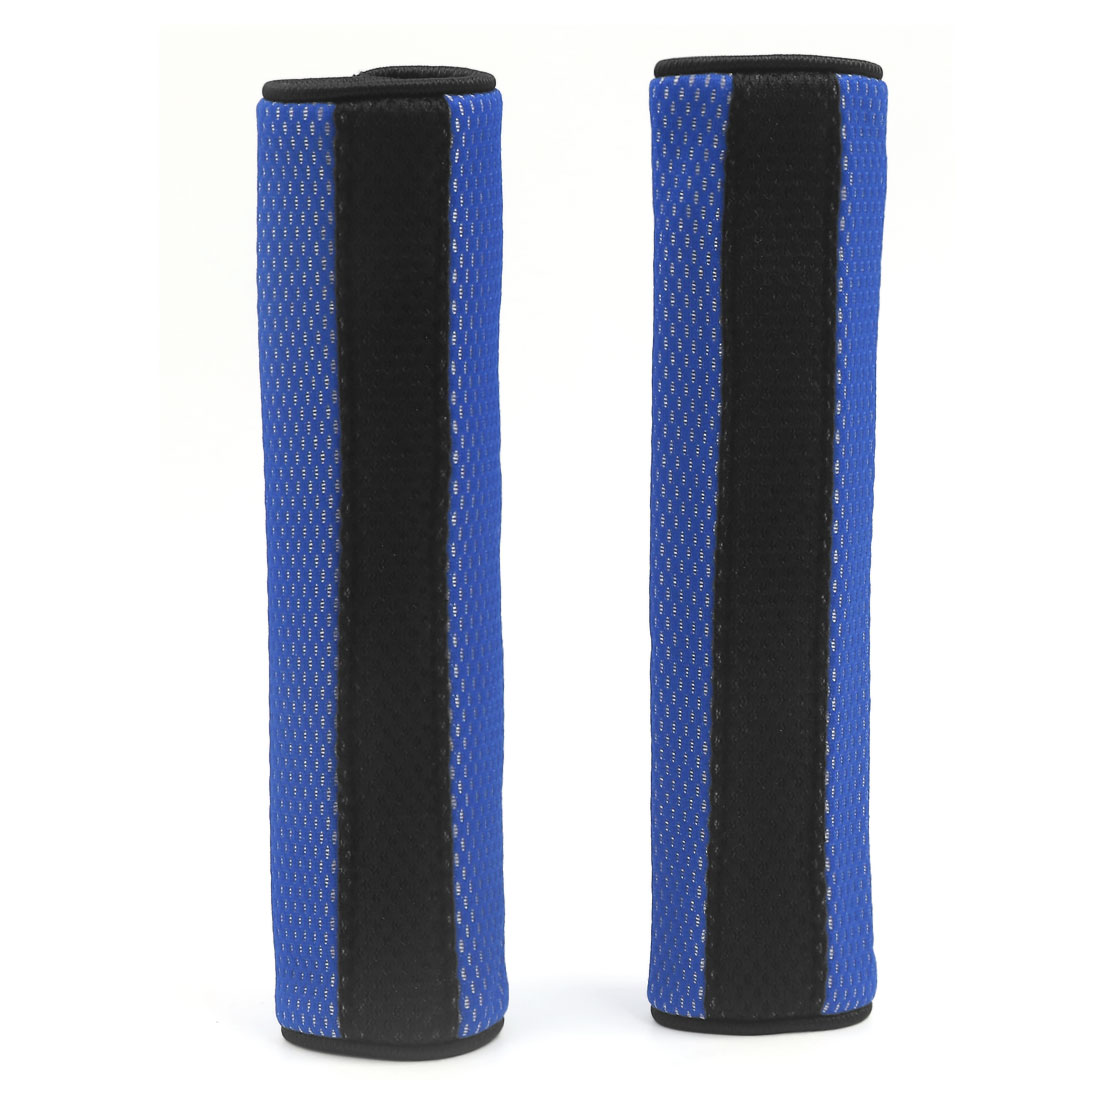 Car SUV Safety Seat Belt Shoulder Mesh Pads Cover Cushion Harness Pad Protector Blue Black 2 Pcs